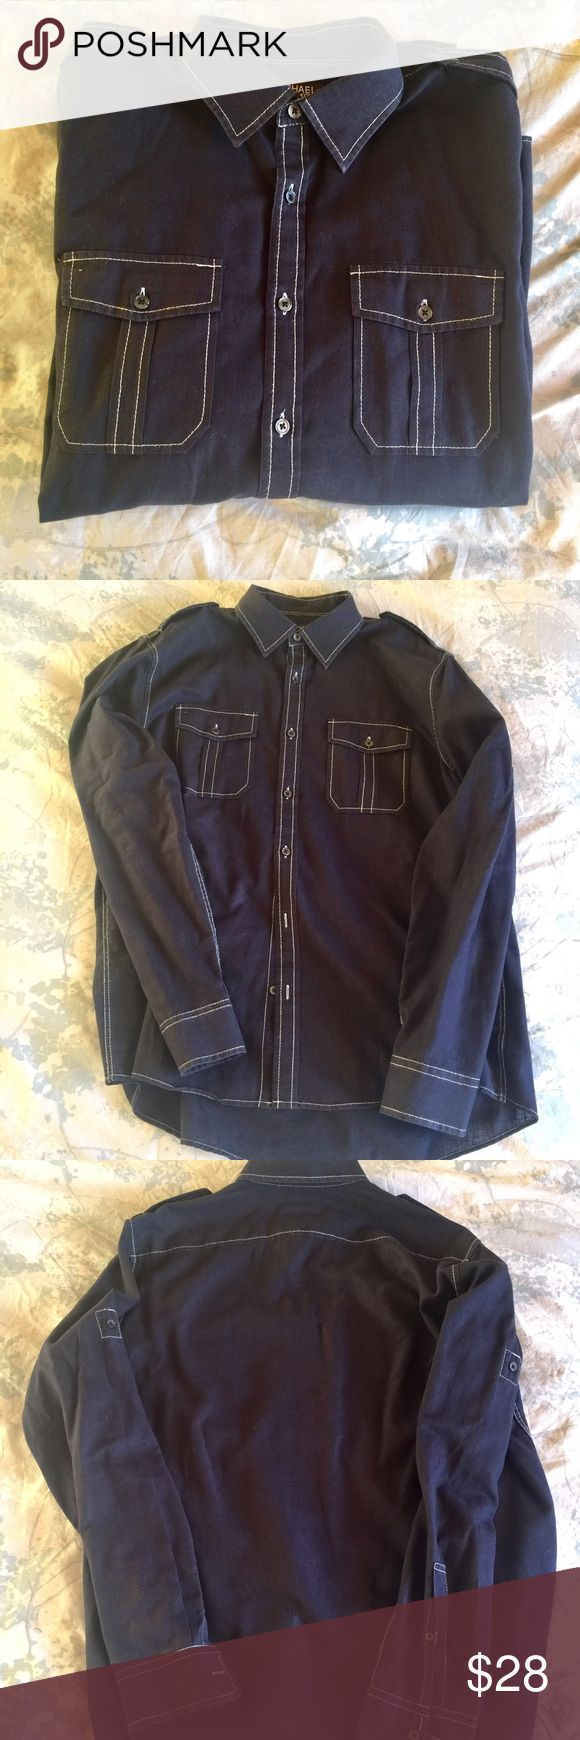 Michael Kors shirt size large. Dark blue Great shirt - Michael Kors size large.  Dark blue with details in white.  See photos.  Buttons on sleeves so you can roll the sleeves up for a more casual look.  Like new condition.  55% linen and 45% cotton - nice and light, natural comfort.  👍🏻👍🏻 MICHAEL Michael Kors Shirts Casual Button Down Shirts